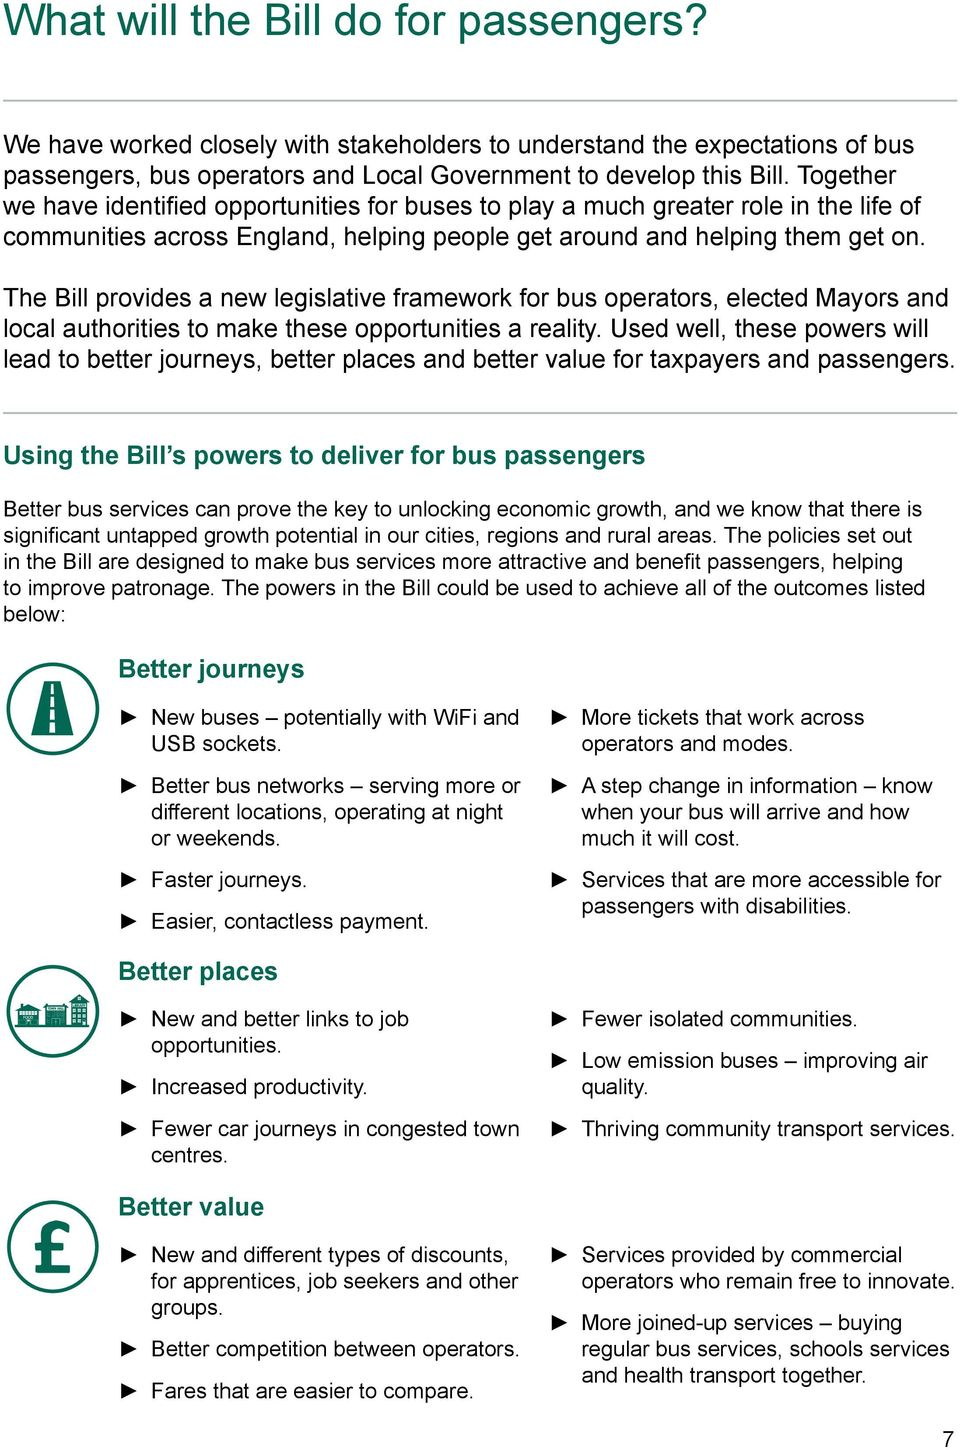 The Bill provides a new legislative framework for bus operators, elected Mayors and local authorities to make these opportunities a reality.